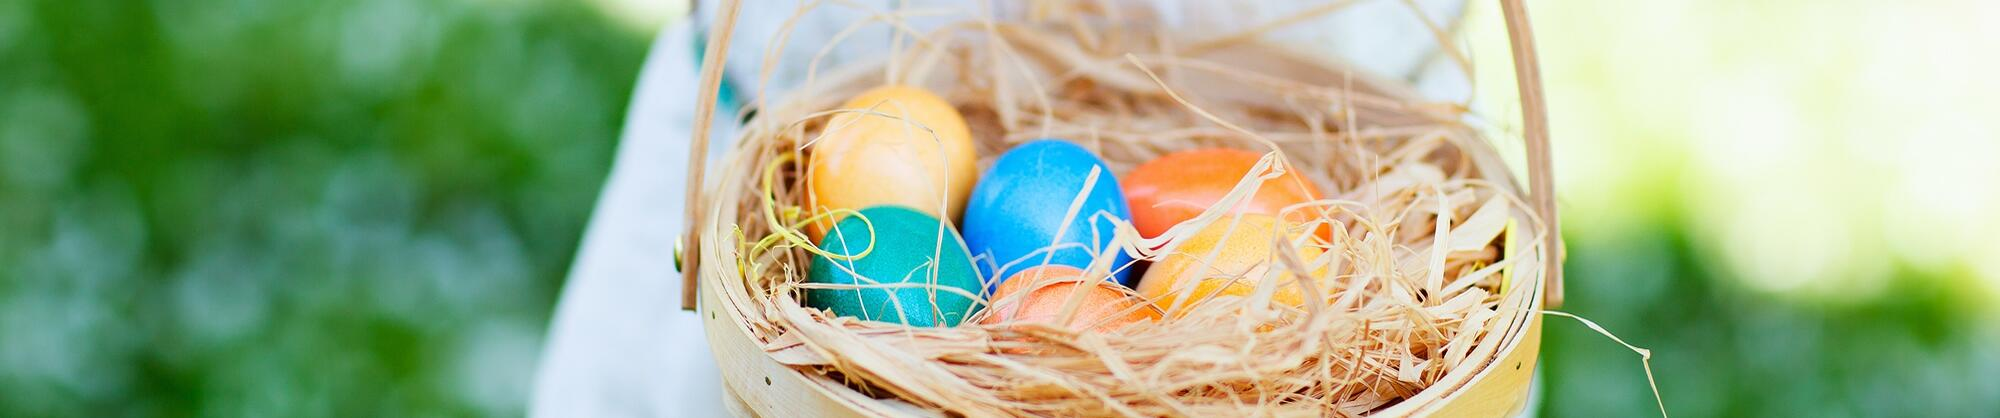 Easter offer: 4 nights for the price of 3 in a hotel in Rimini with children's discounts